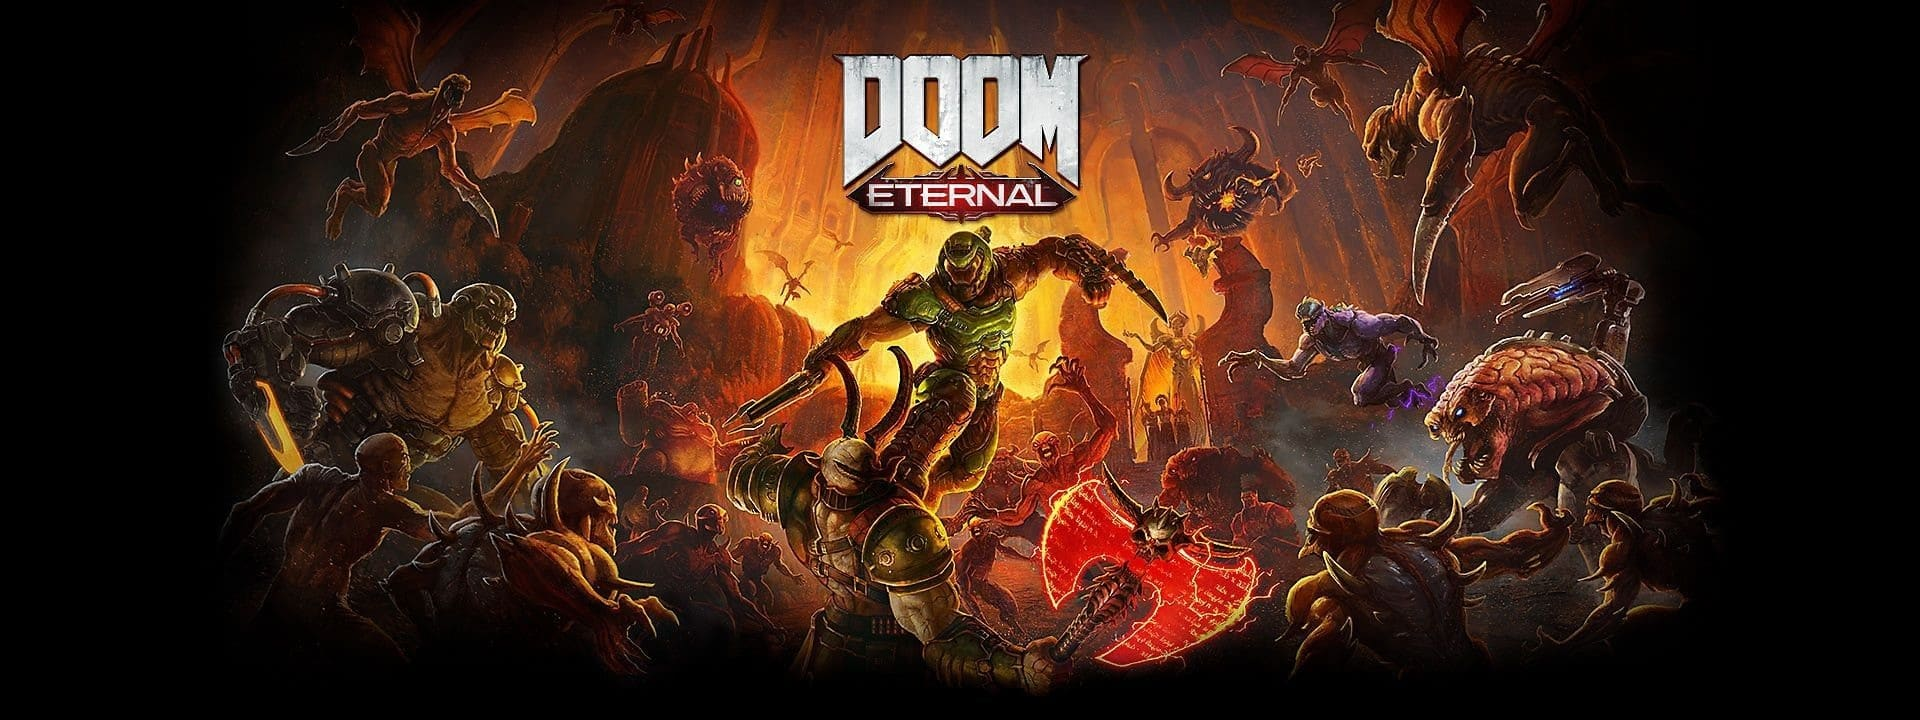 DOOM ETERNAL RELEASES SUCCESSFULLY WITH VIRTUOS ART